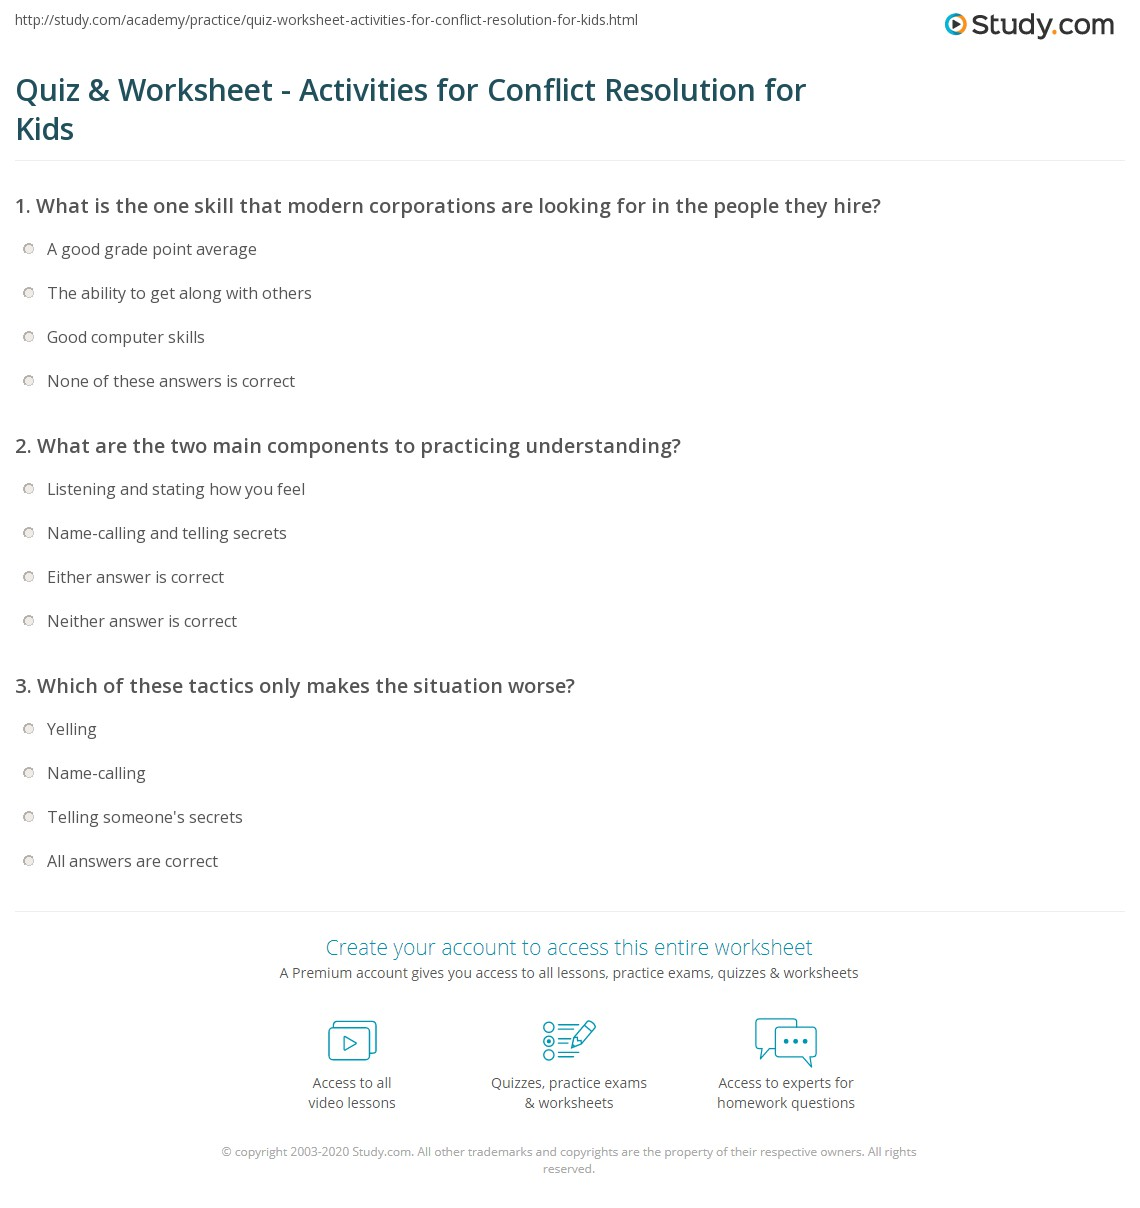 Printables Conflict Resolution Worksheets For Kids quiz worksheet activities for conflict resolution kids print worksheet